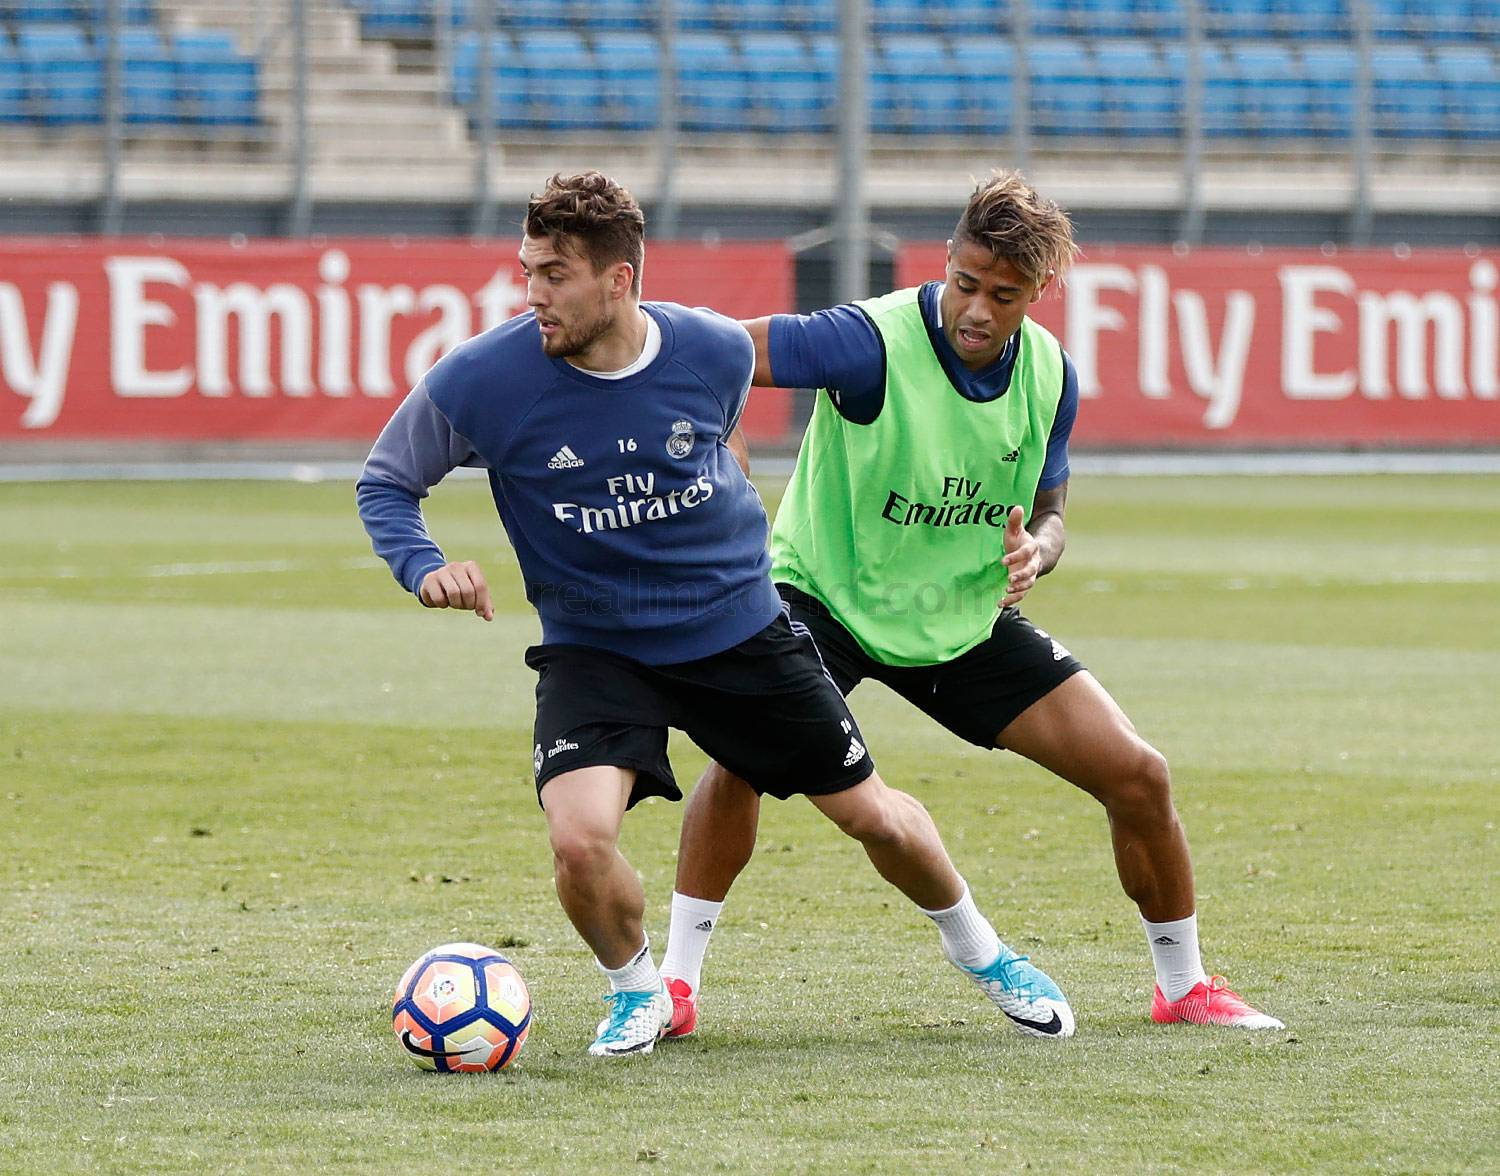 Real Madrid - Entrenamiento del Real Madrid - 13-04-2017